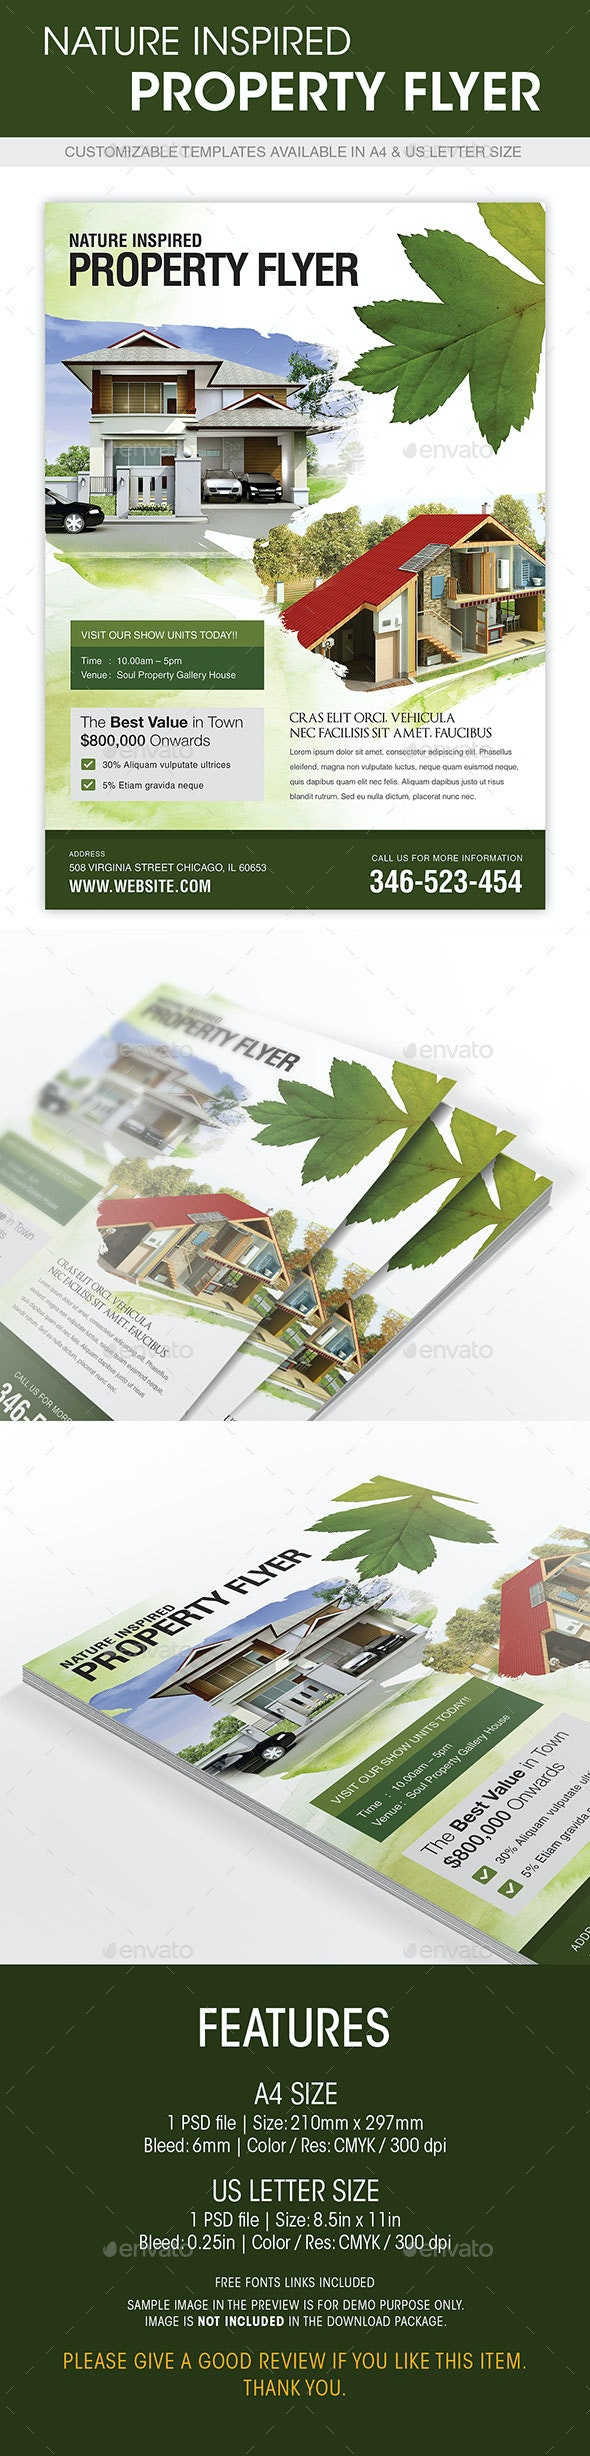 Nature Inspired Property Flyer - Corporate Flyers